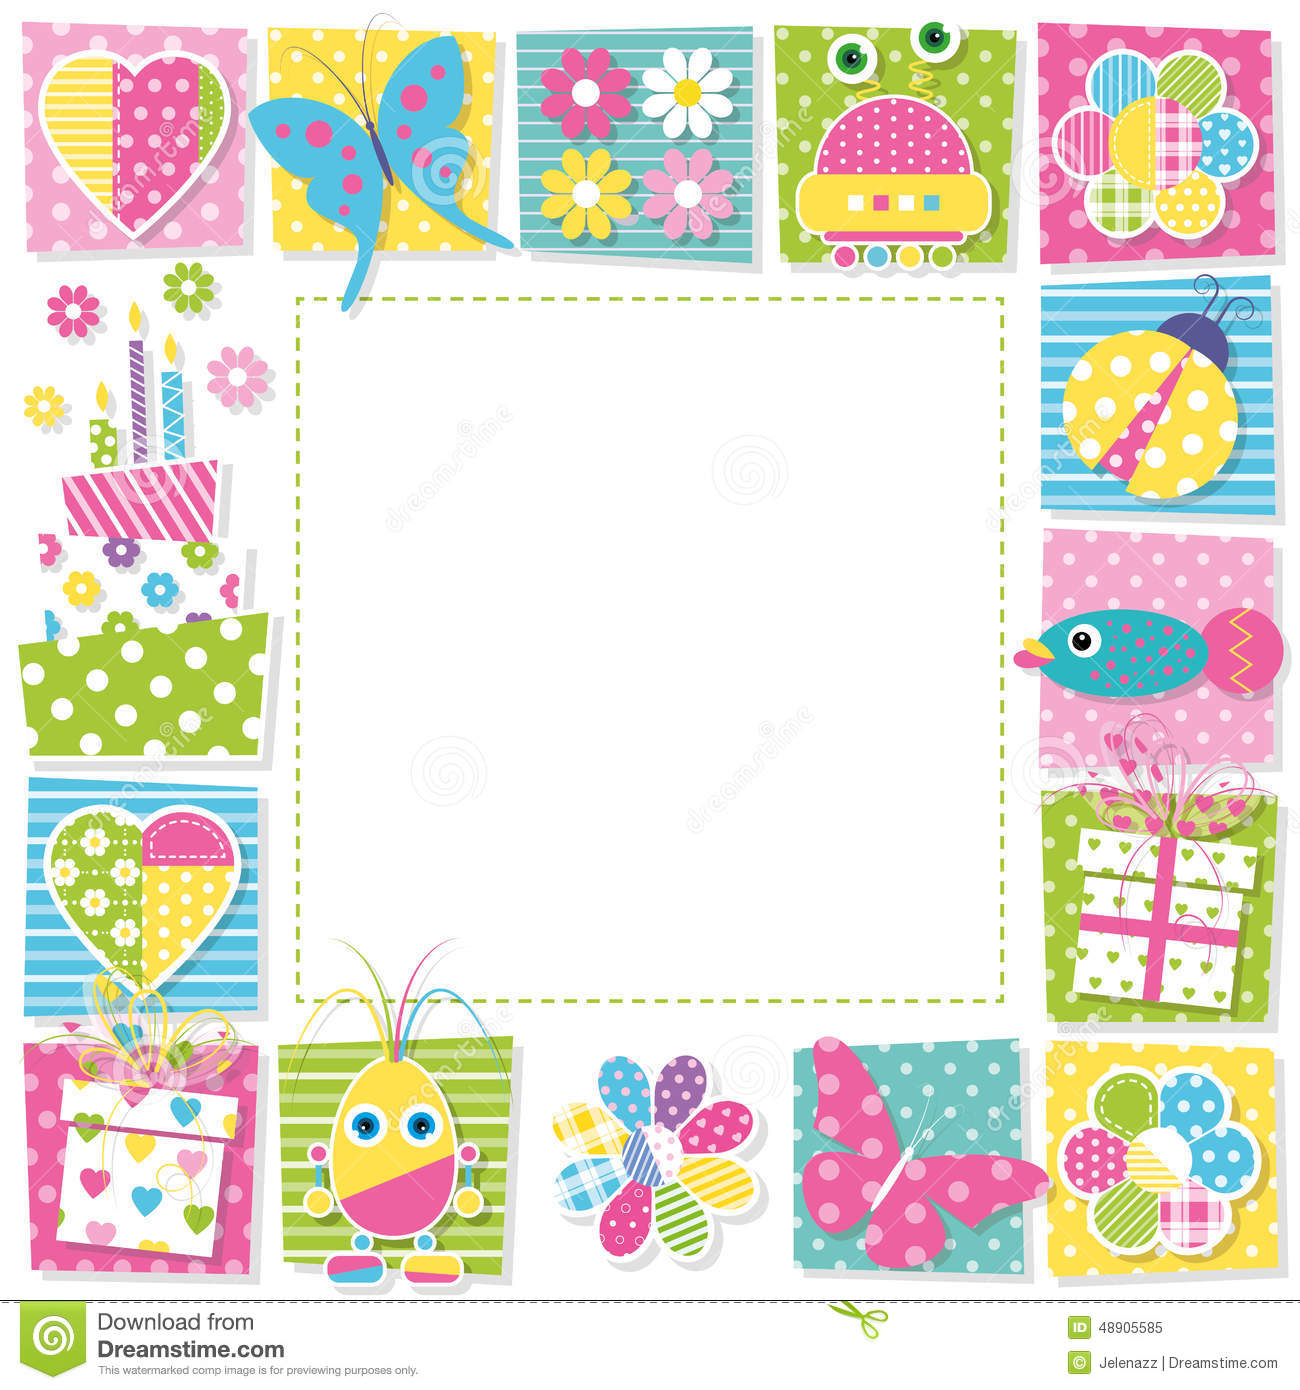 clipart birthday borders and frames ; cute-happy-birthday-border-illustration-butterflies-hearts-flowers-ladybug-robots-presents-cake-fish-colorful-square-48905585